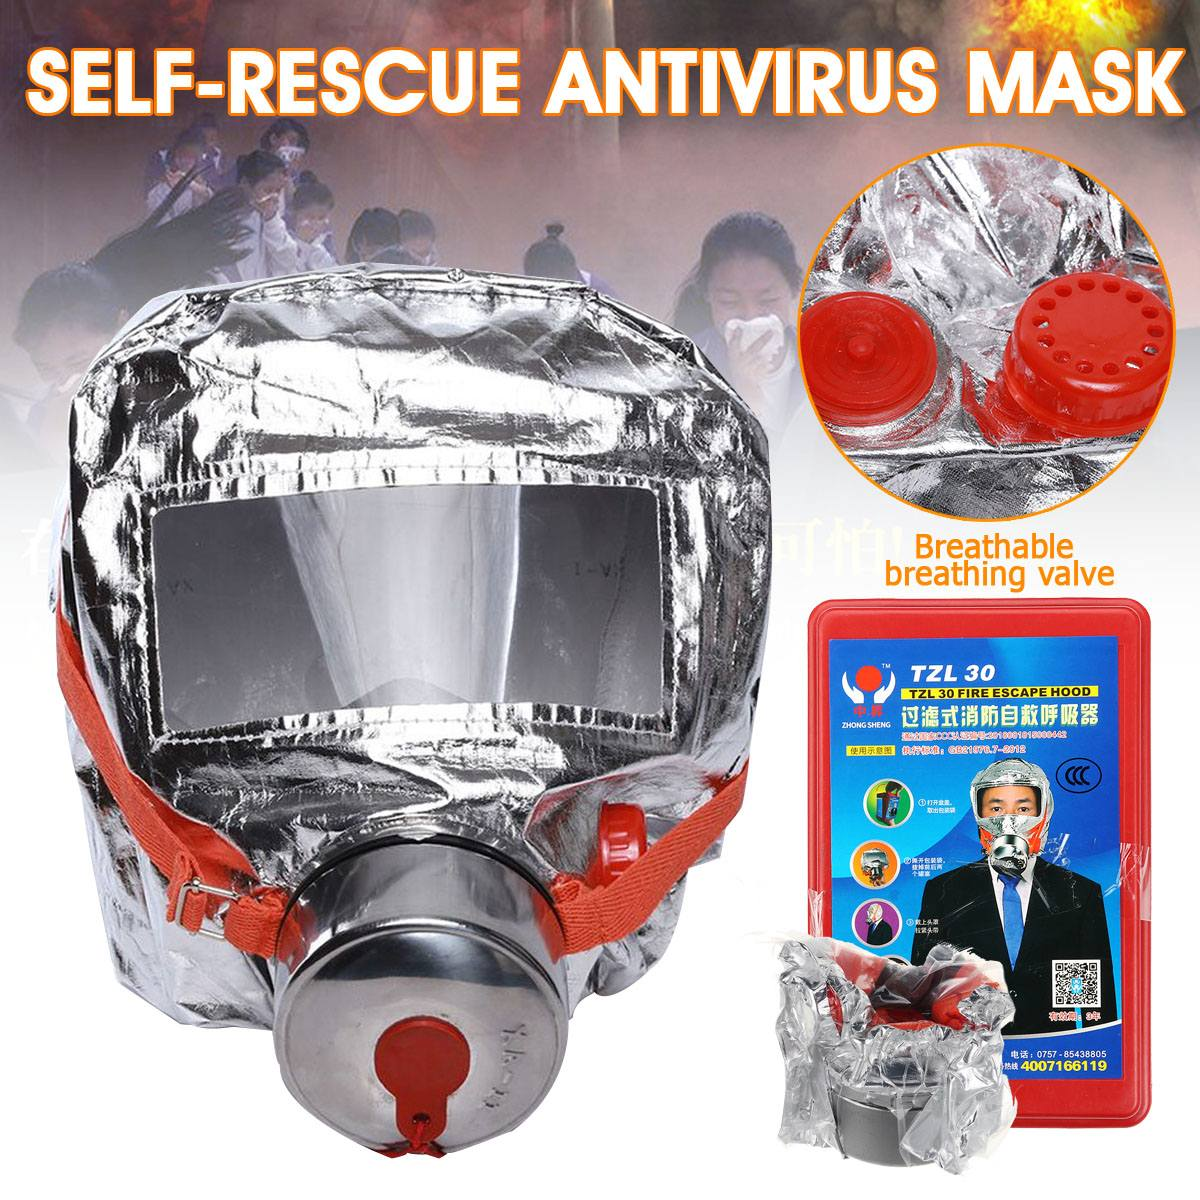 Smoke Fire-Mask Filtering Respiratory Protective Devices for Hotel Household Firefighting Escape Self-rescue Antivirus Mask